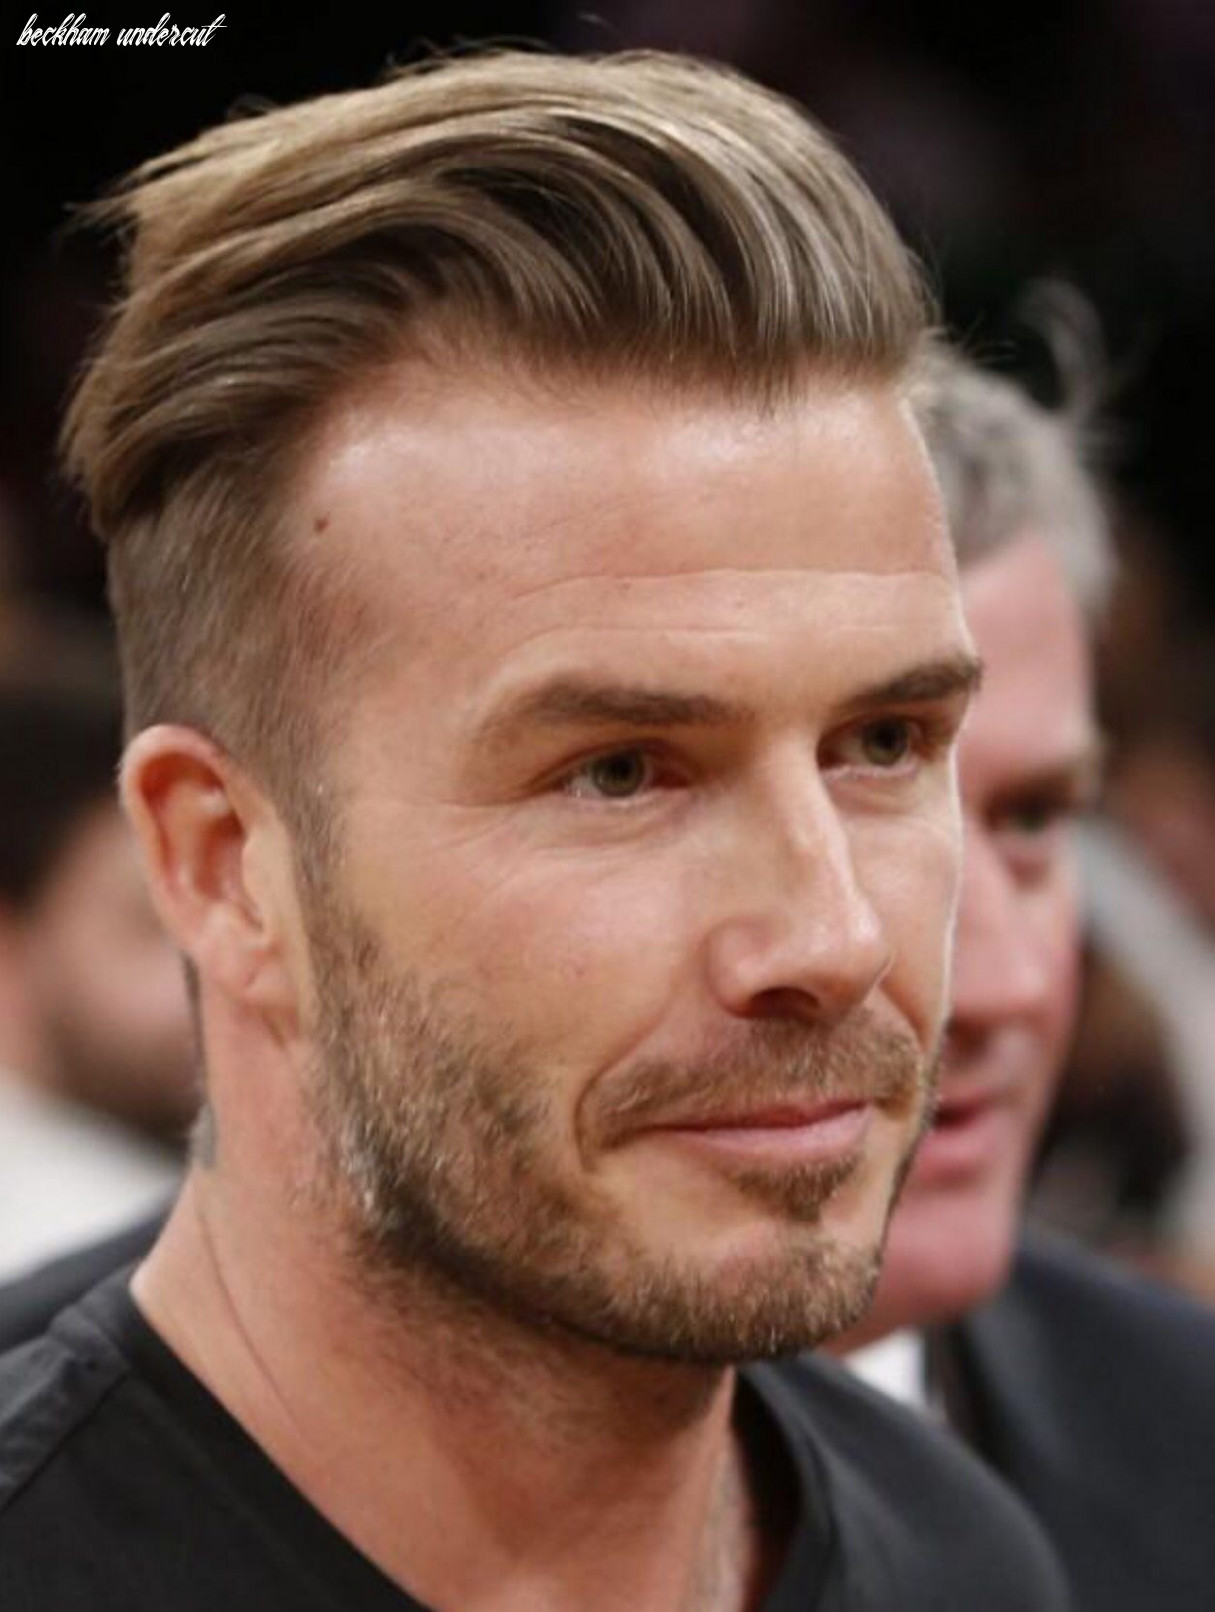 Undercut comb over | david beckham hairstyle, beckham hair, david